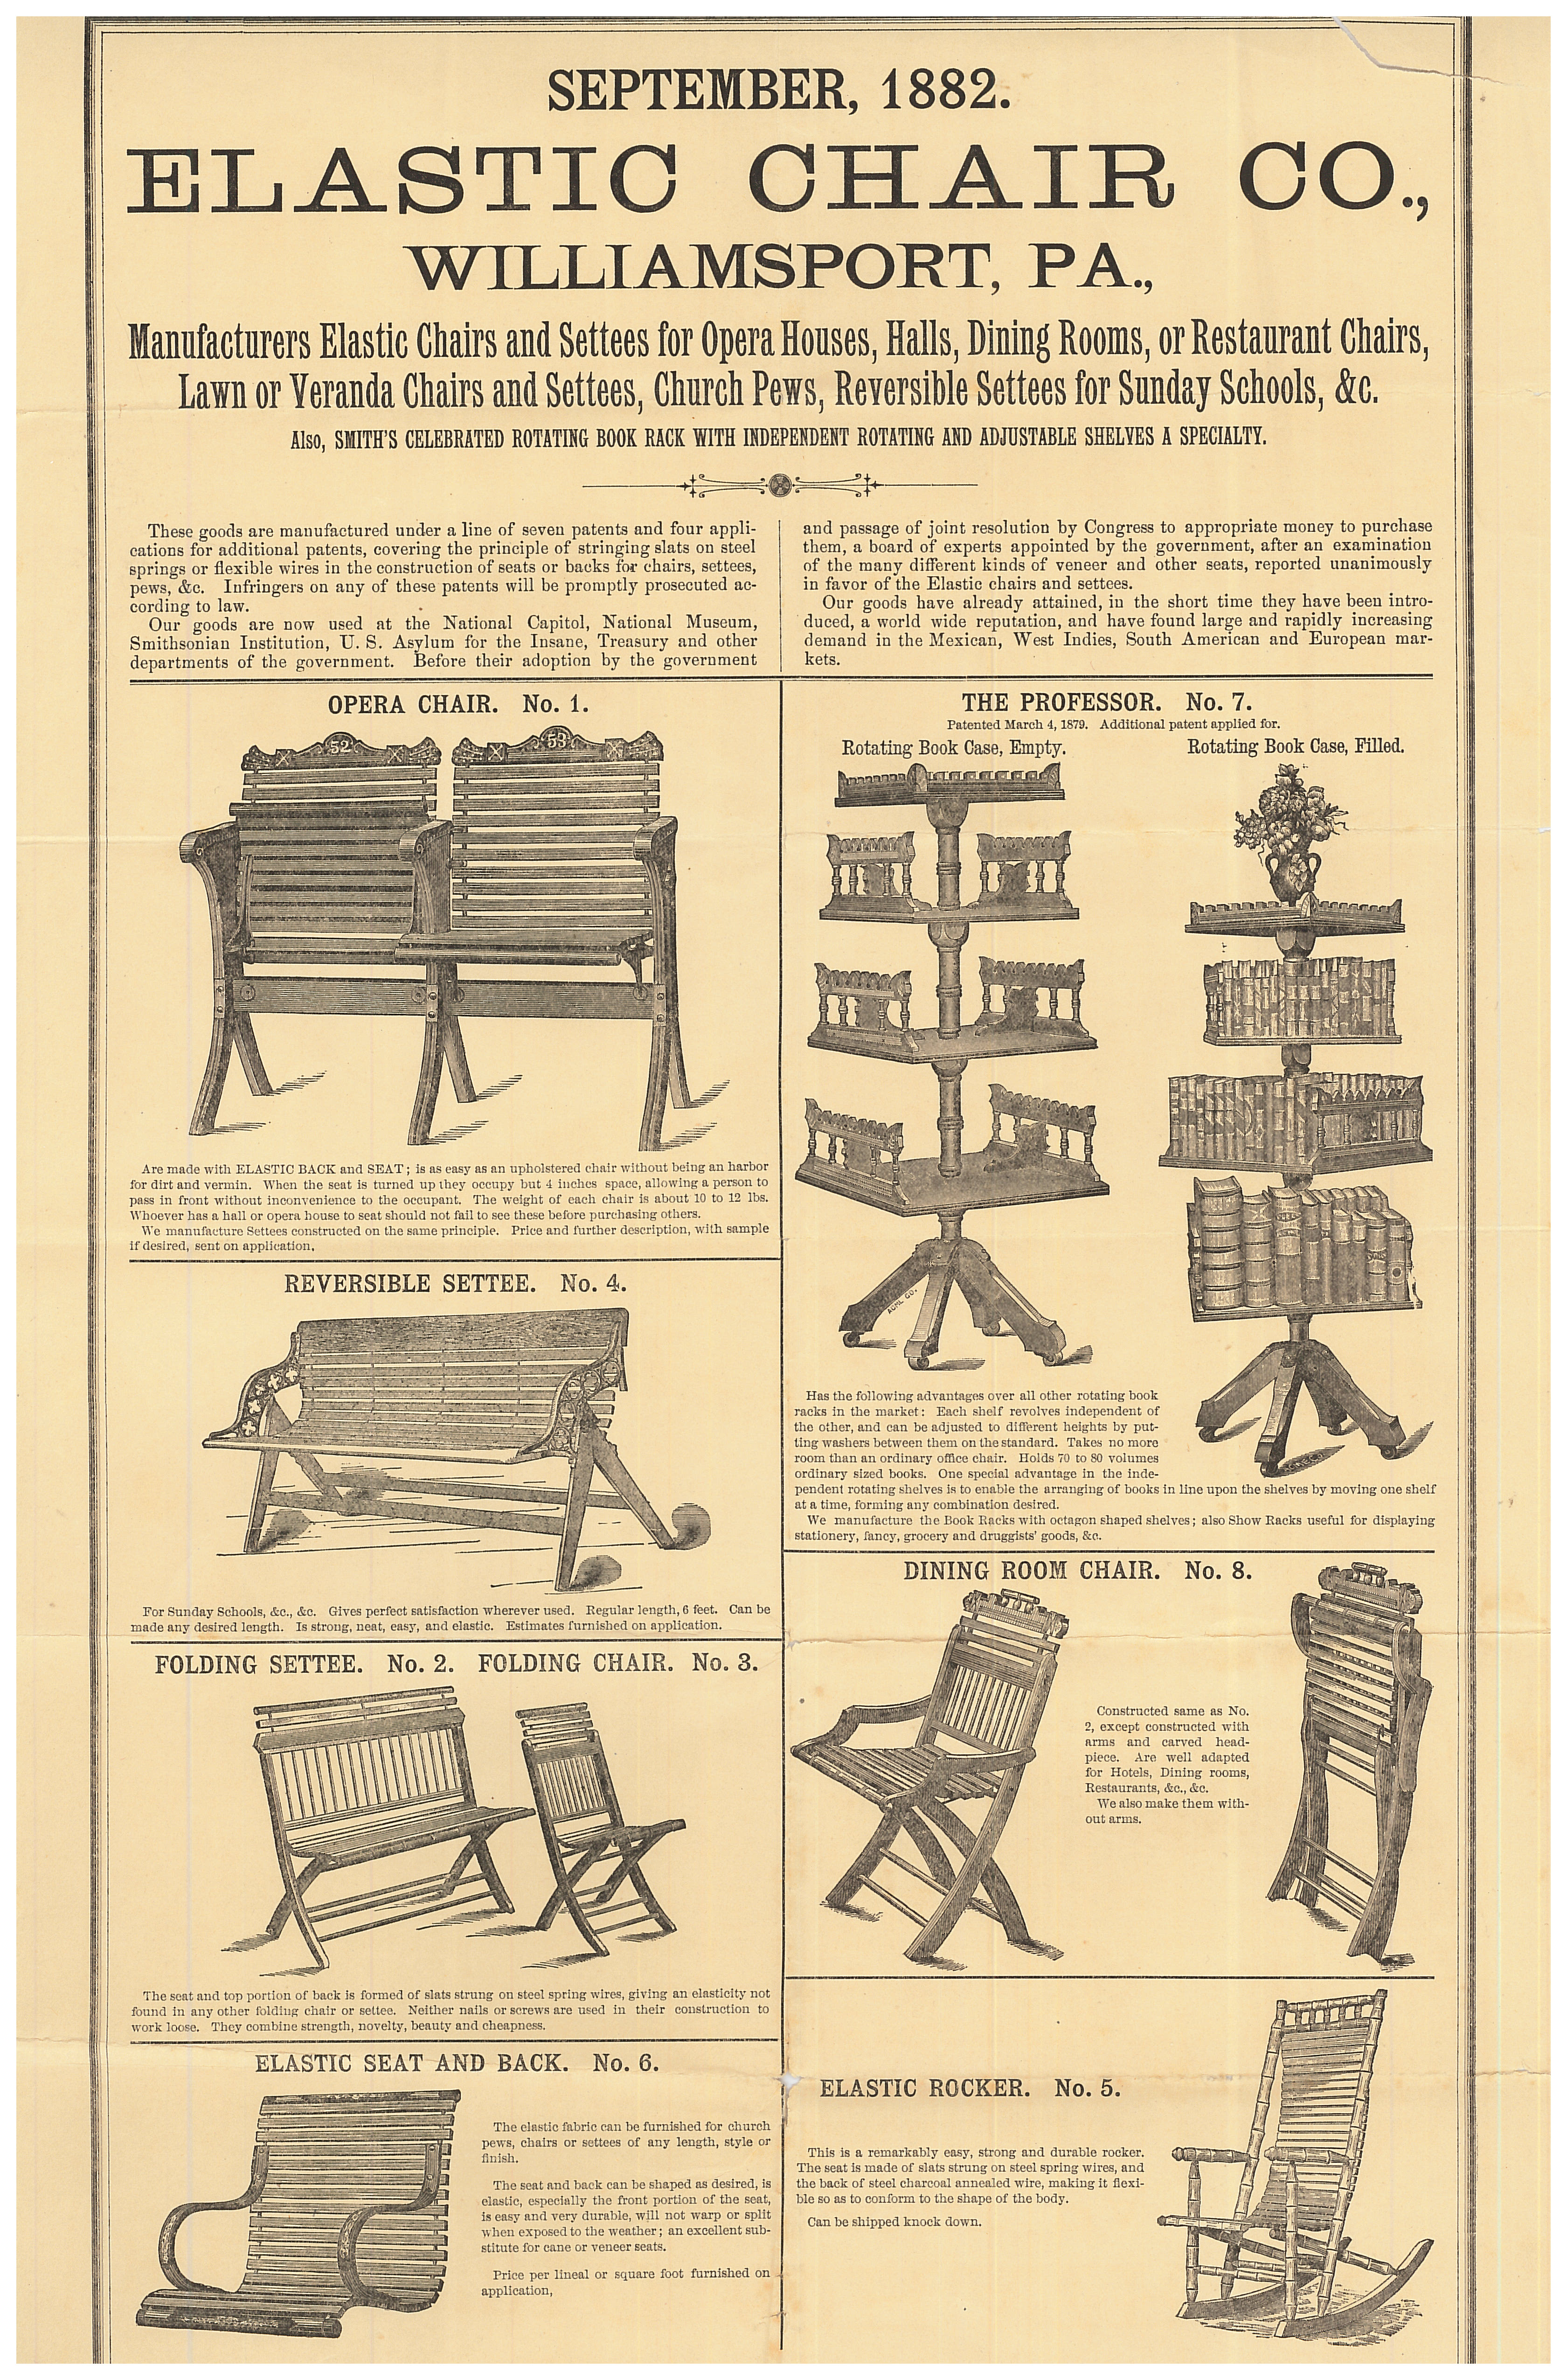 Opera Chairs, Settees, Rotating Bookcases, Dining Room Chairs, Rocking  Chairs, Folding